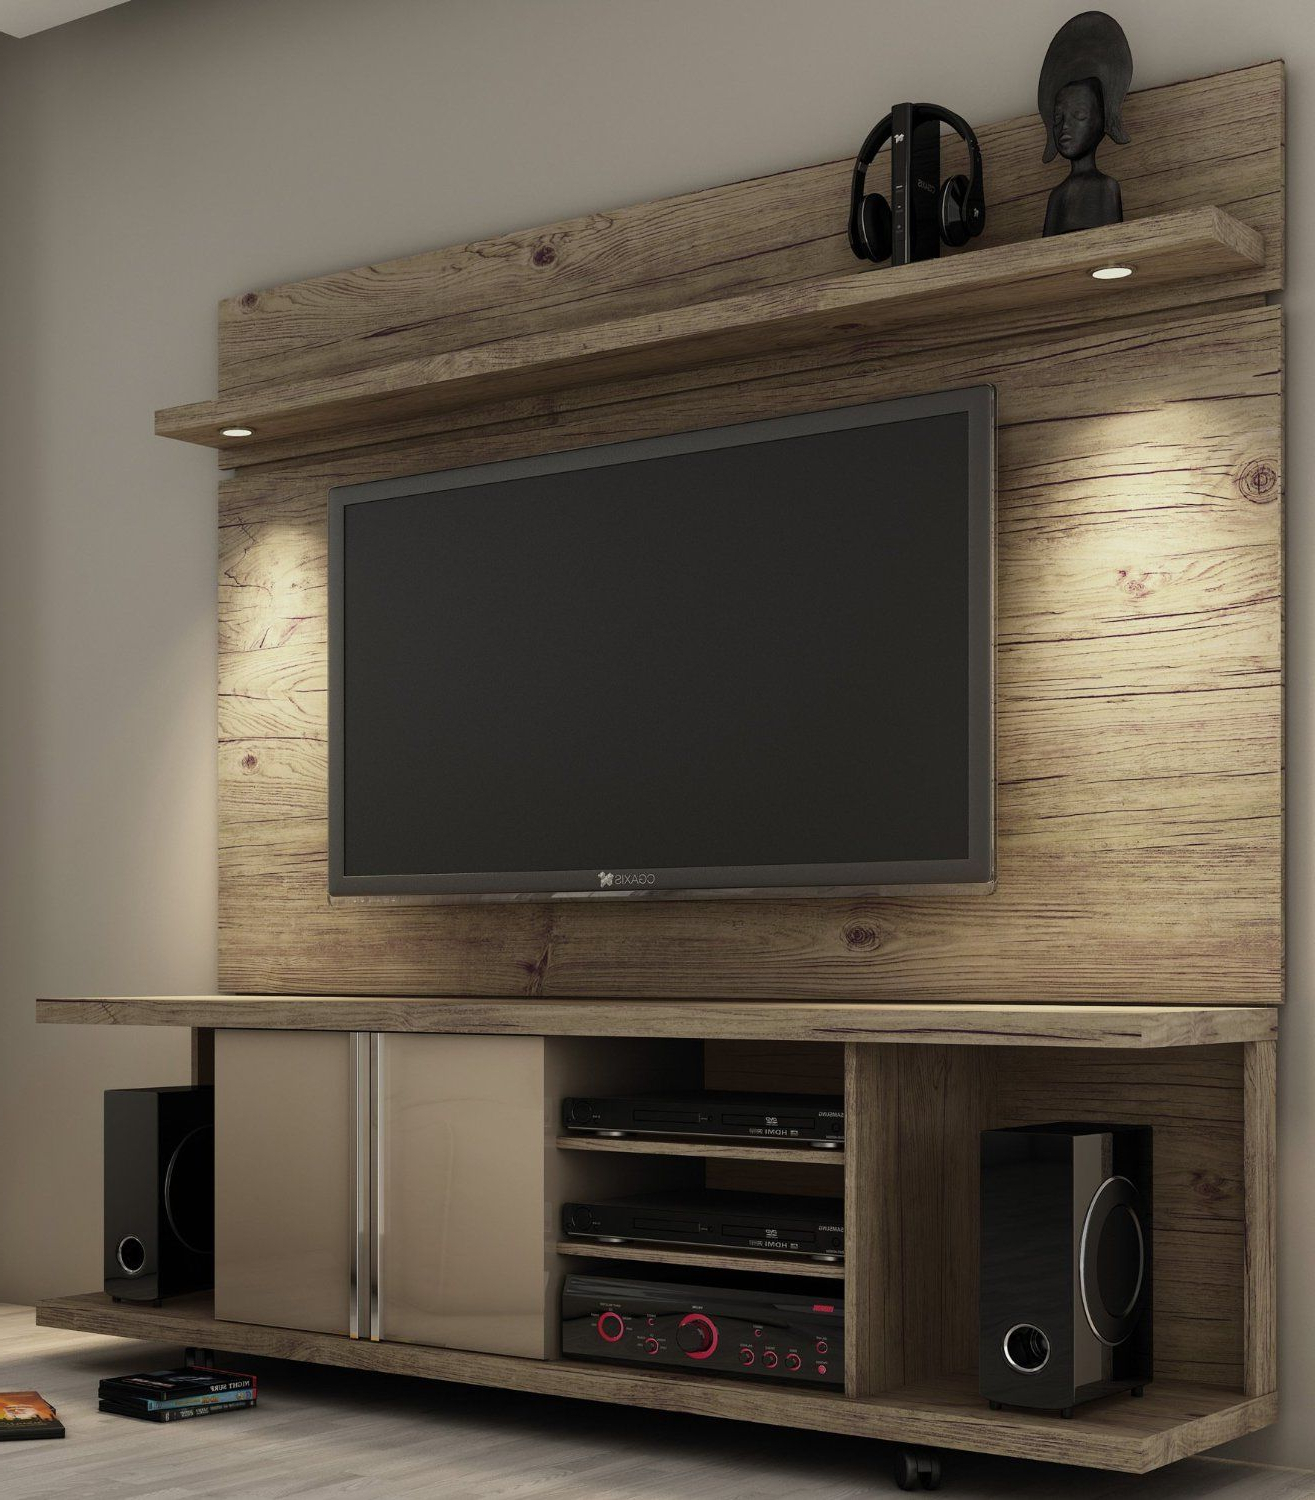 Have Pops Construct Something Like This For Me With Reclaimed Wood In Current Kenzie 60 Inch Open Display Tv Stands (Gallery 19 of 20)